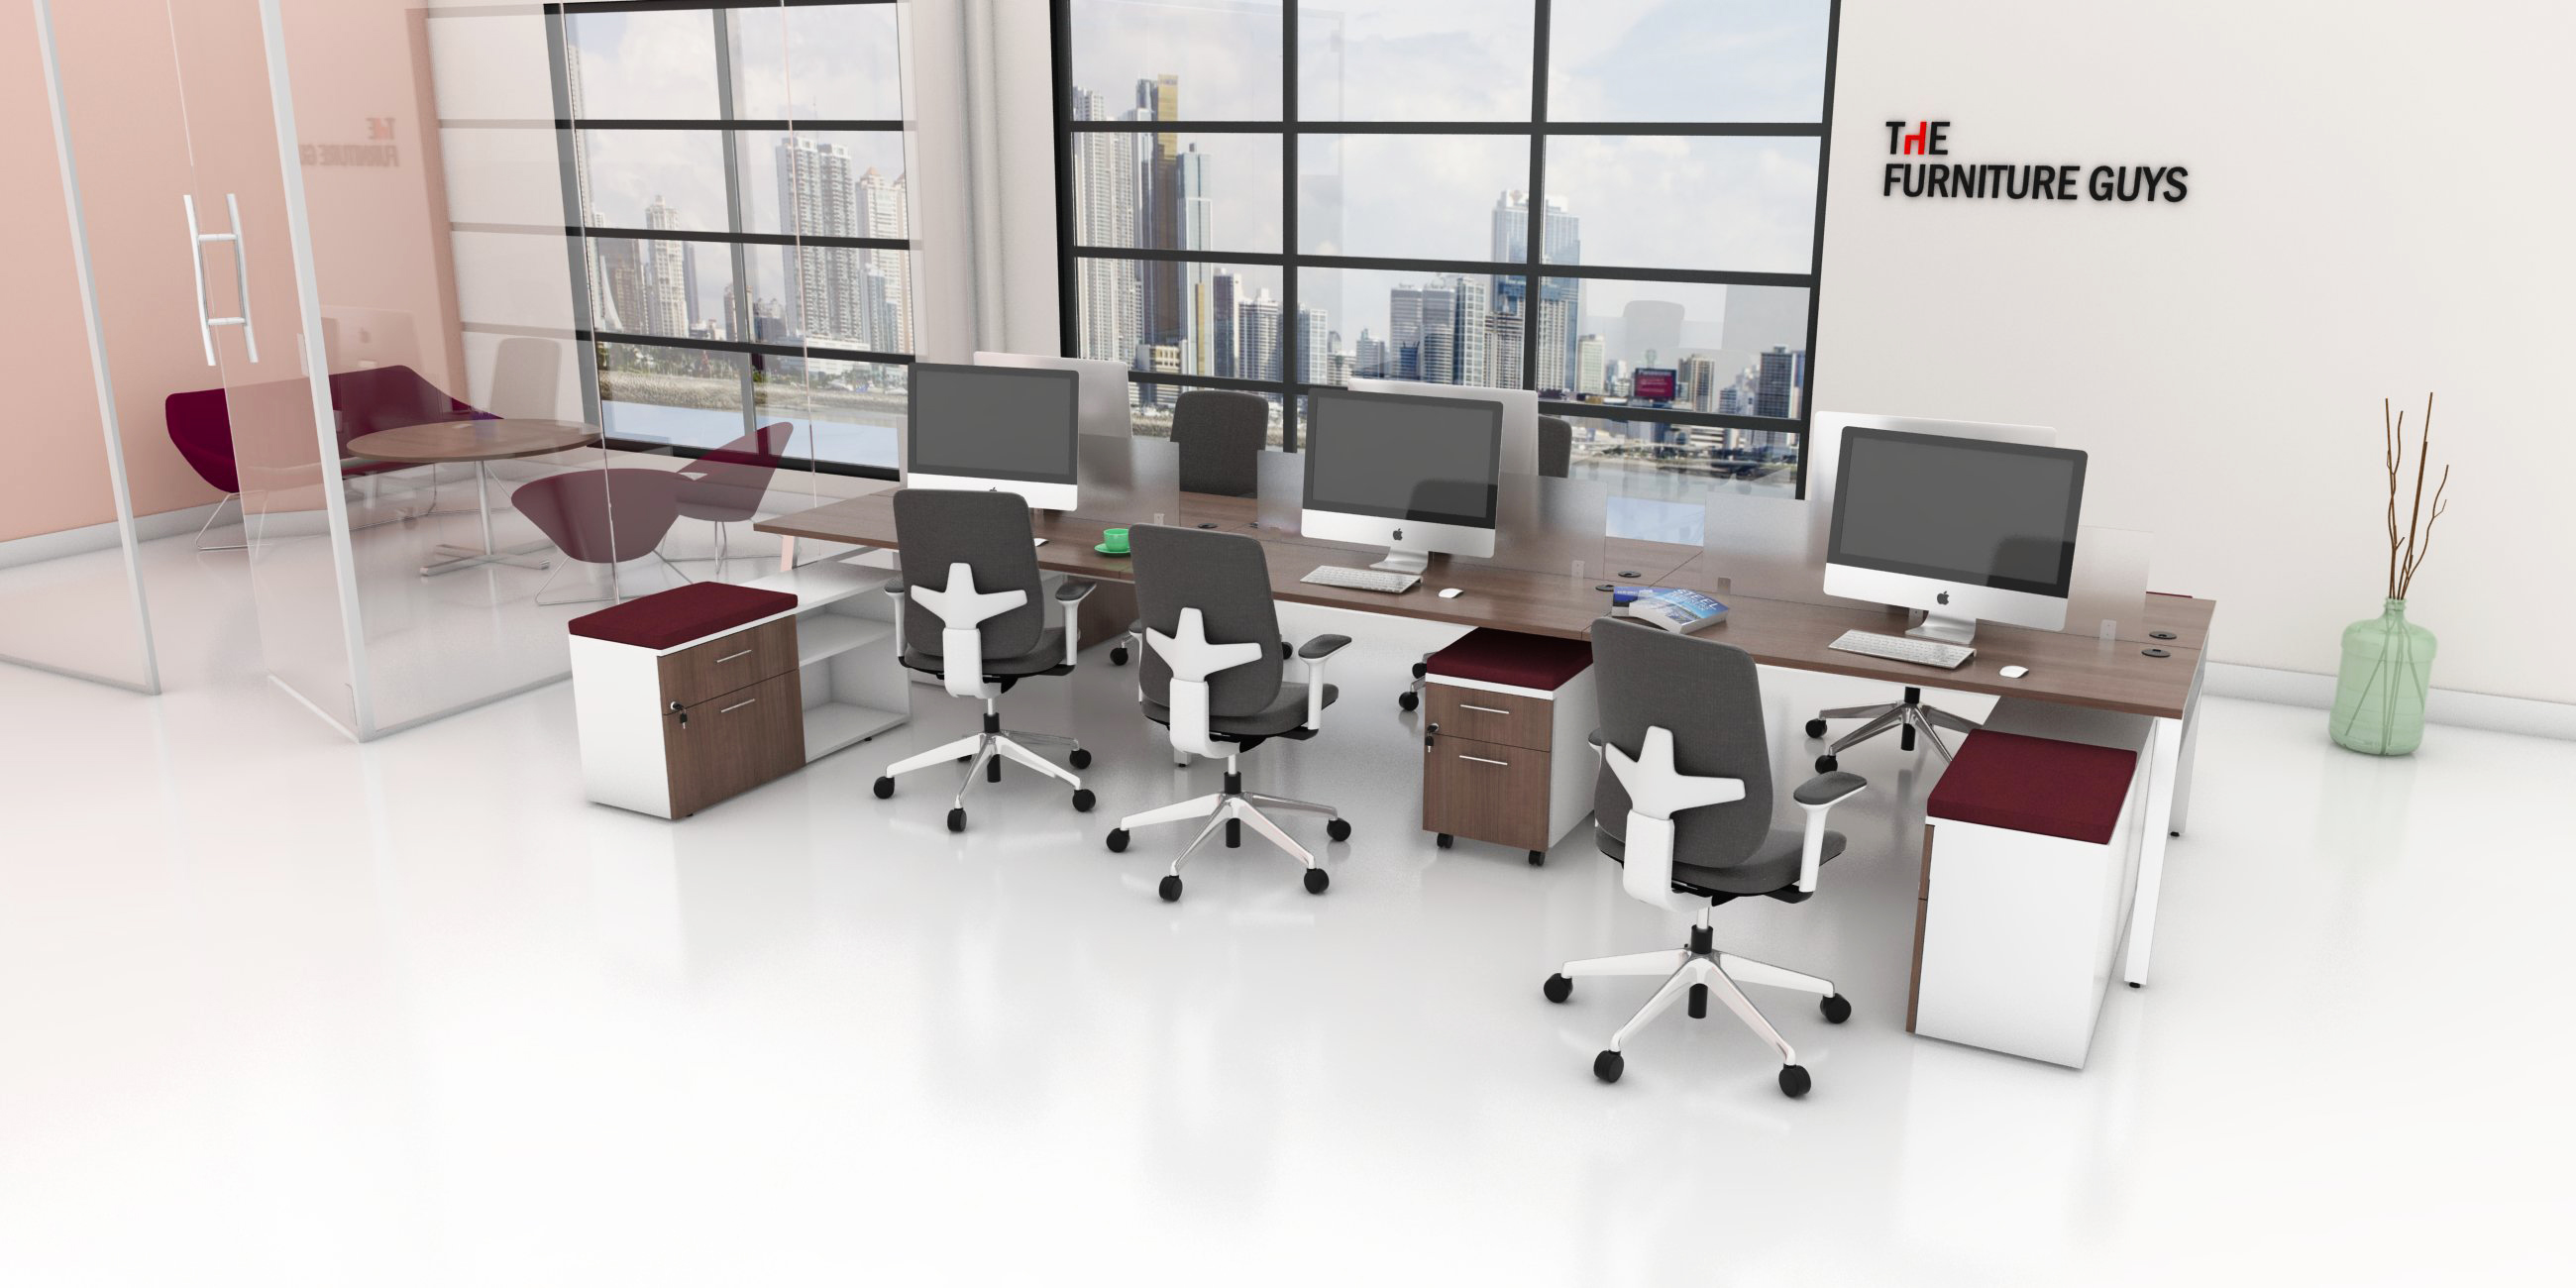 Office Furniture Toronto - Modern Bench Workstation with Mobile Pedestals and Glass Walls